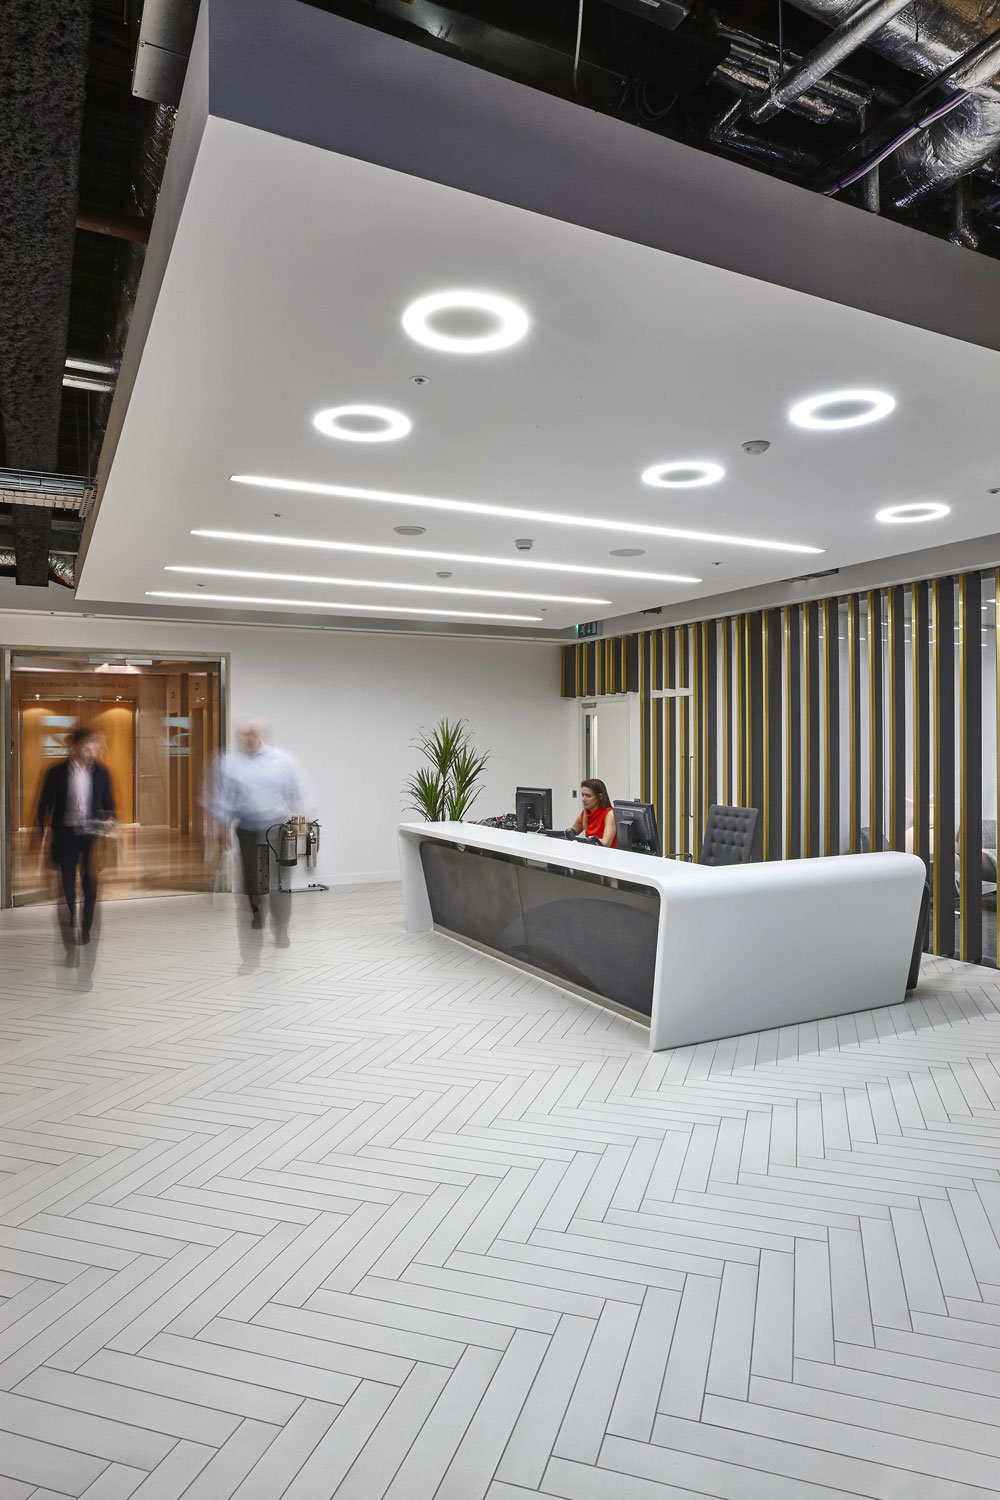 Mako Derivatives, Appold Street, Broadgate, London | Architectural Interior Photographer